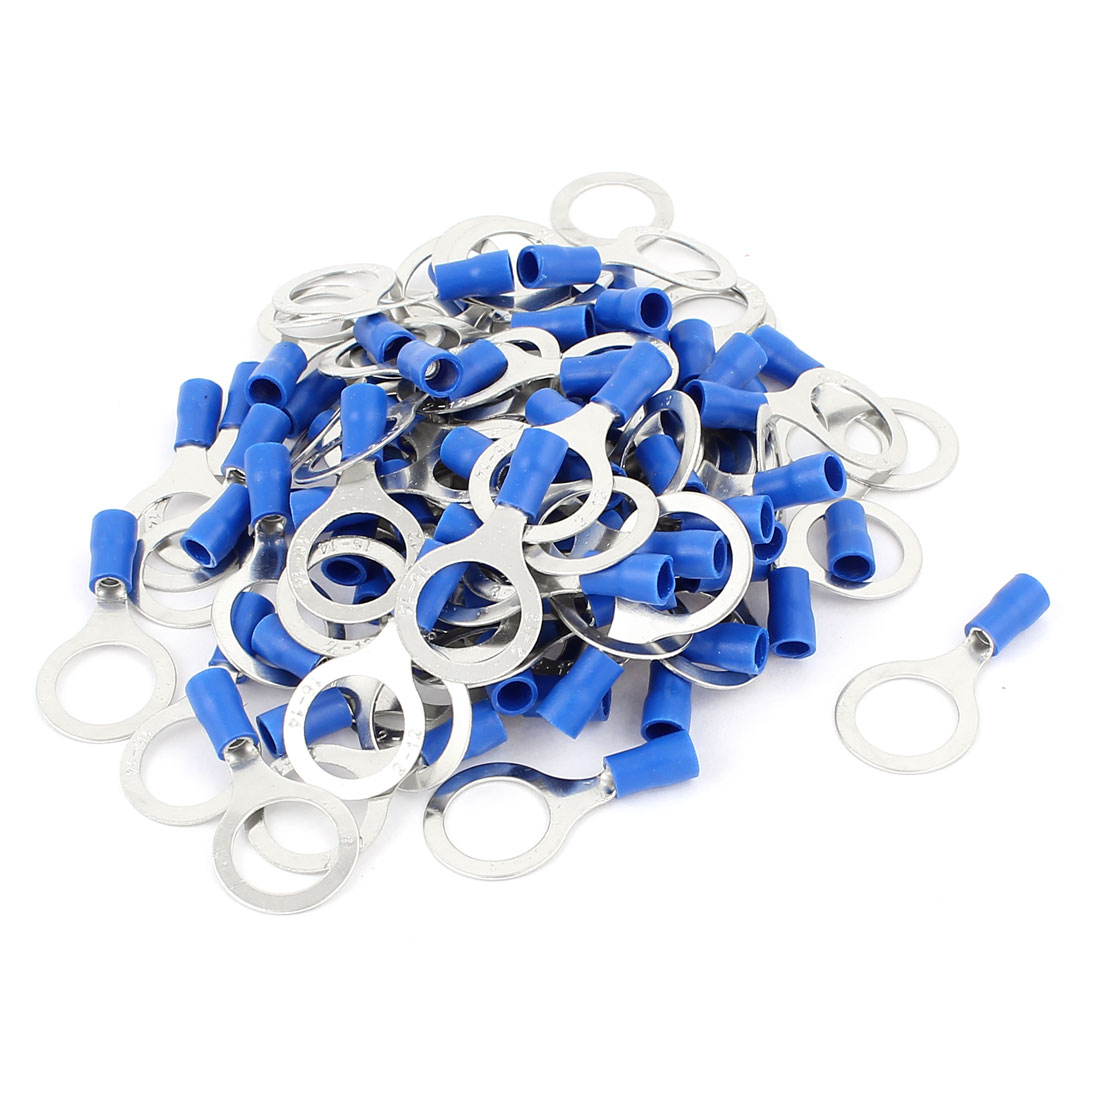 80 Pcs PVC Pre-Insulated Ring Crimp Electric Cable Terminals Connector Splice AWG 2-12 Blue